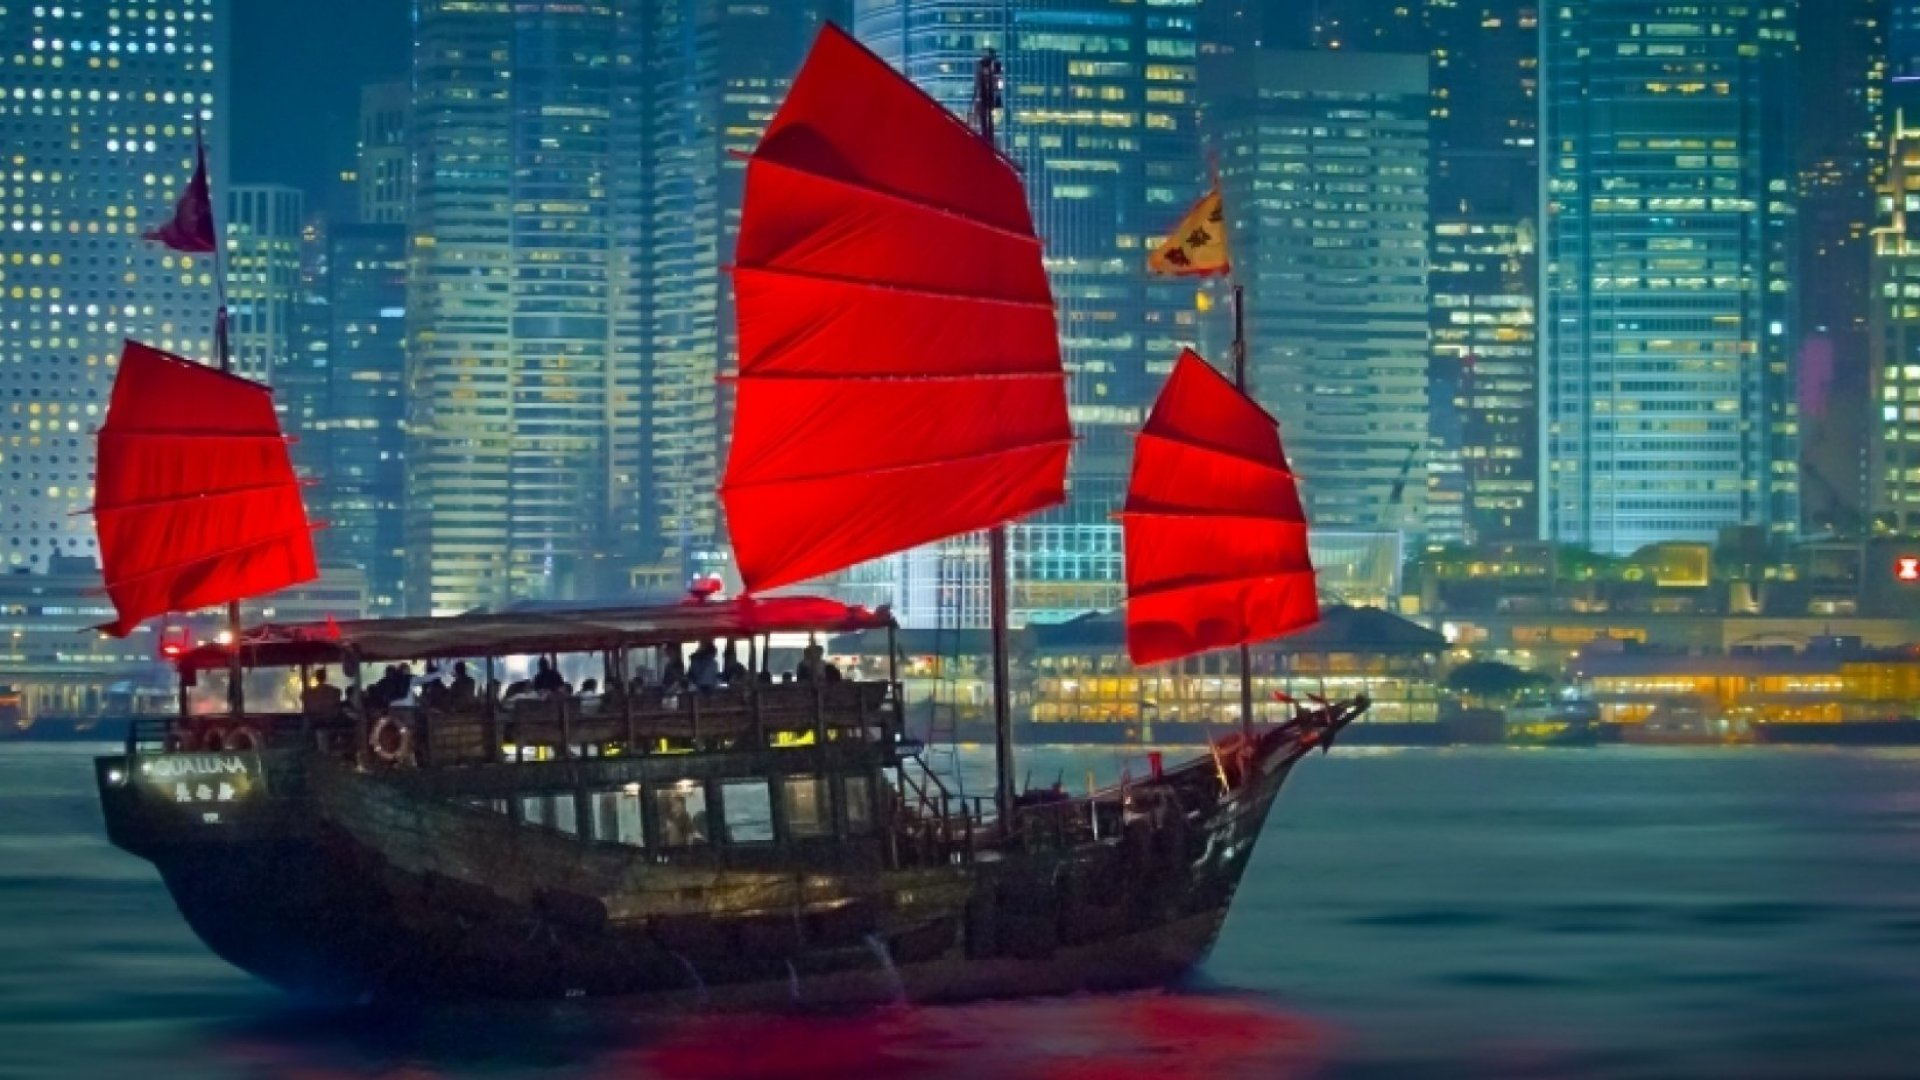 15 Hot Hong Kong Startups to Look Out For